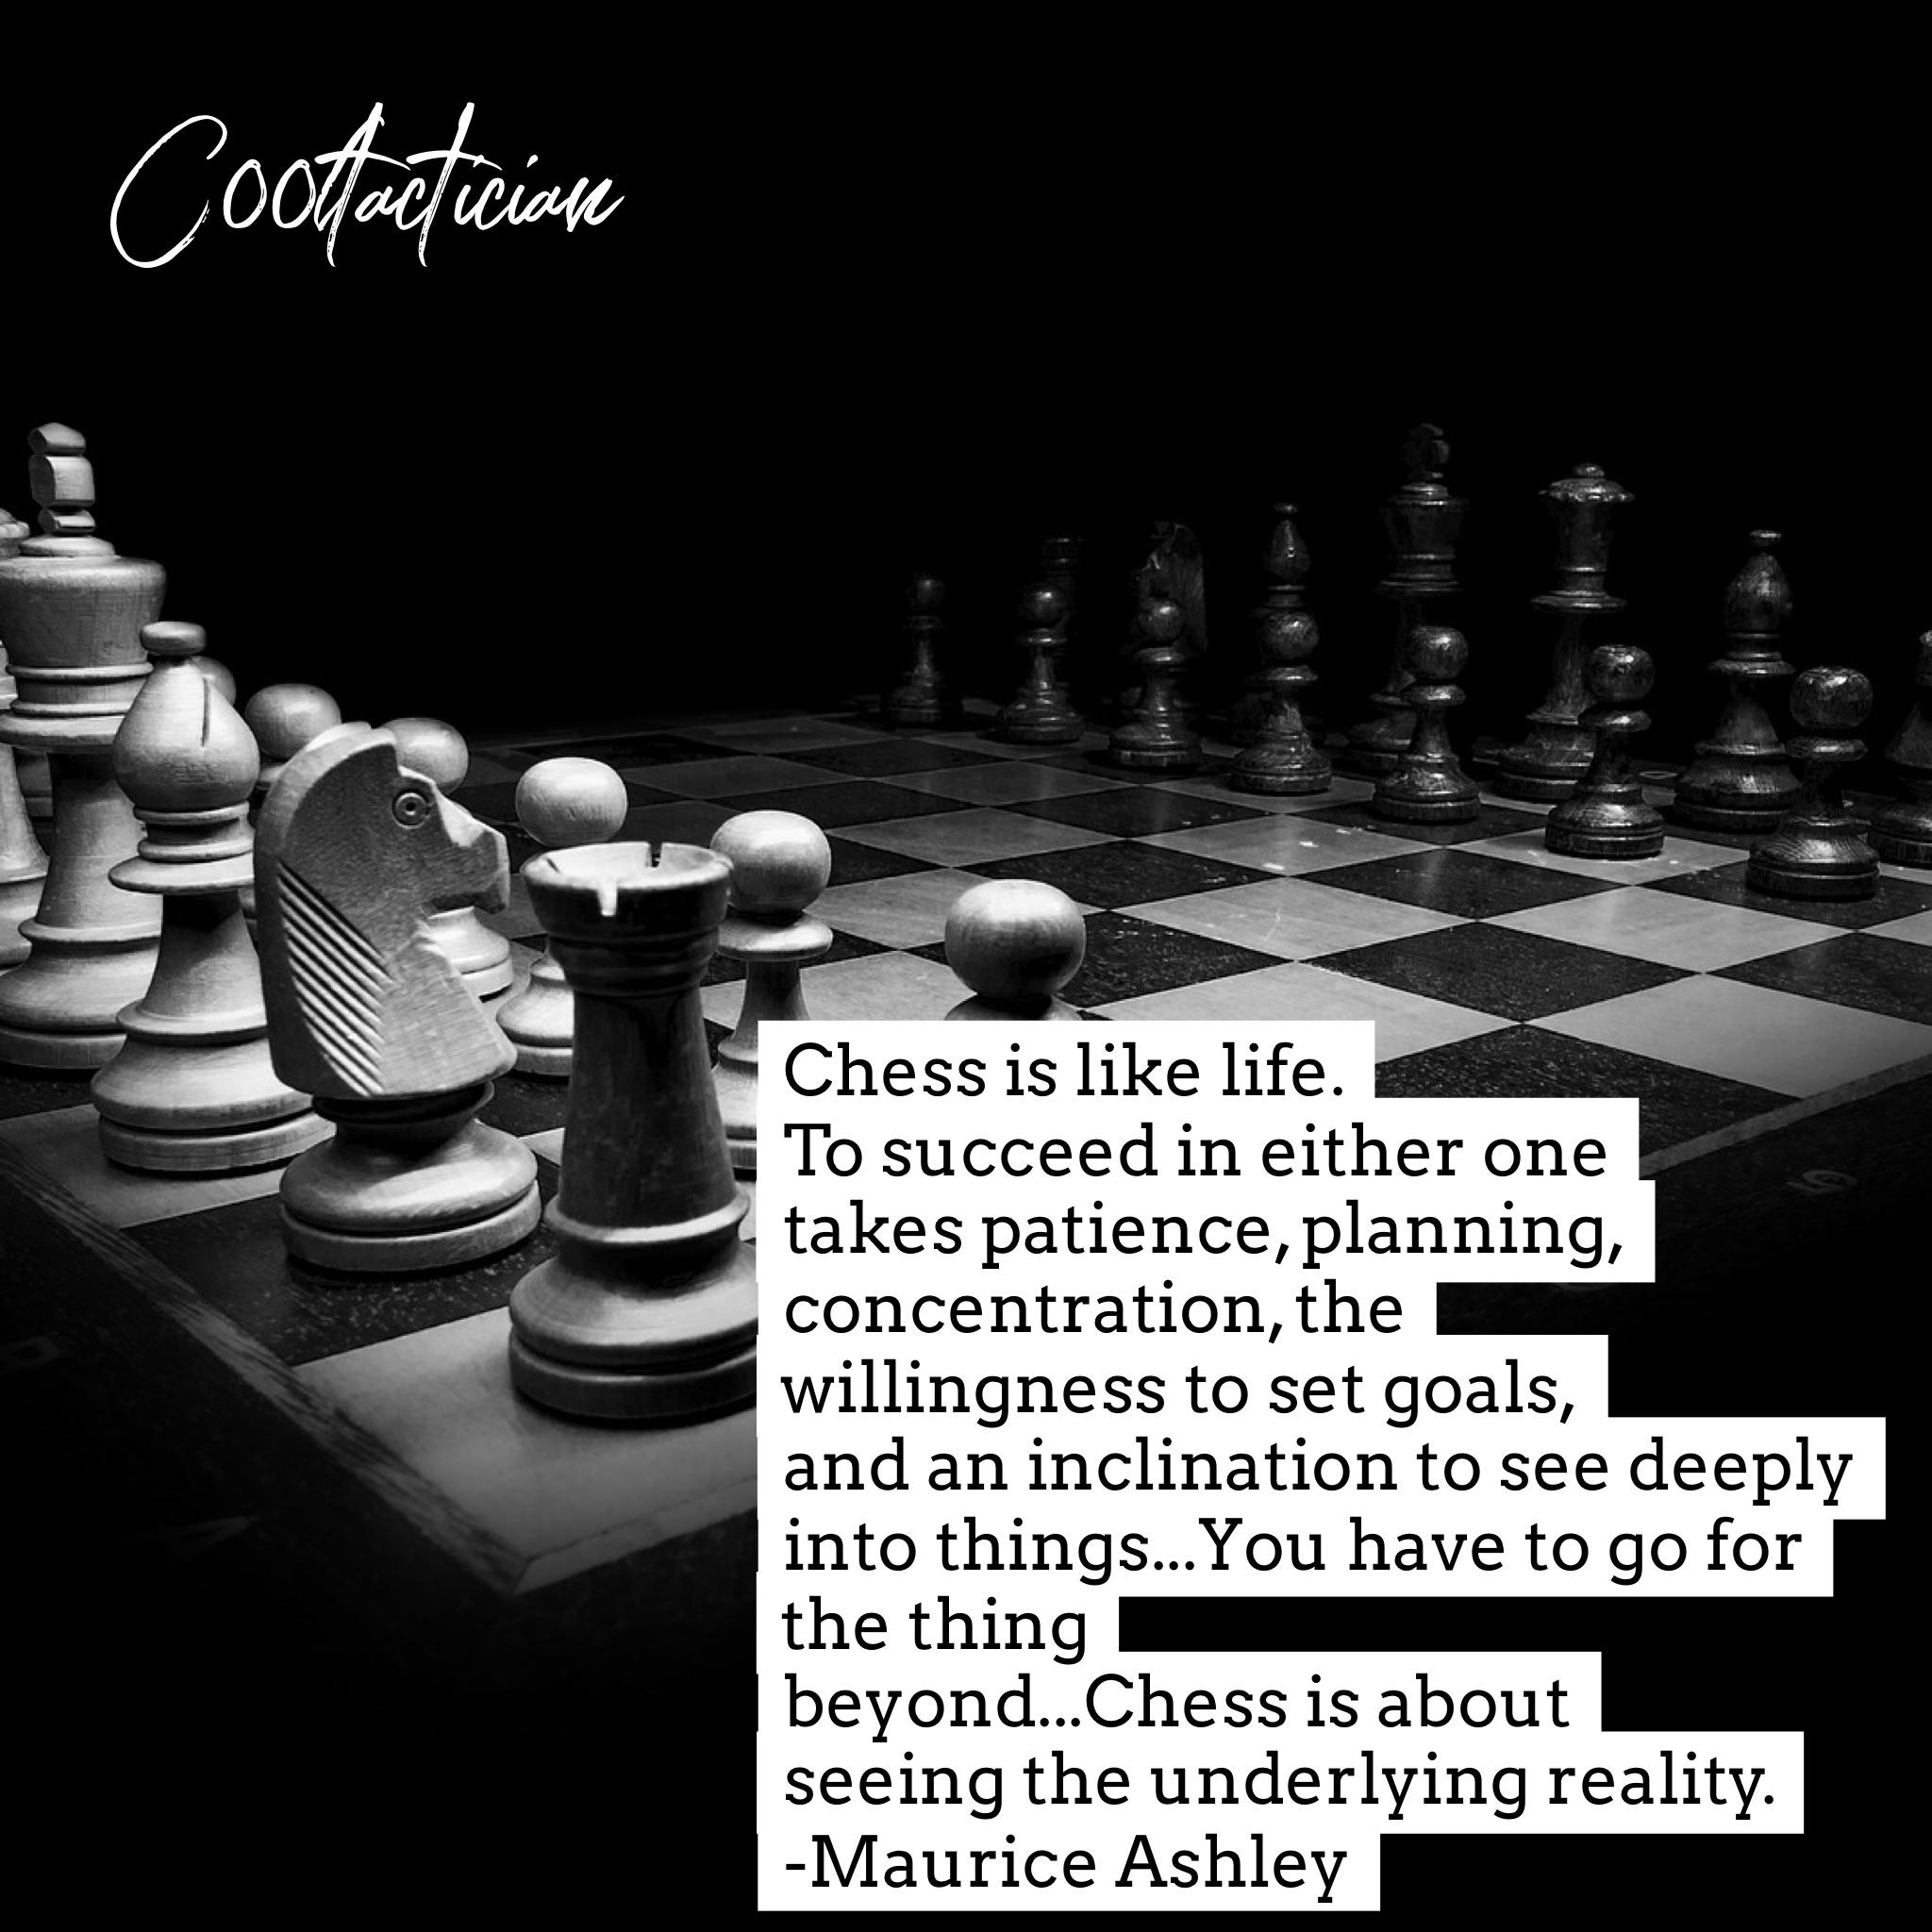 Chess is Like Life Maurice Ashley [2048 x 2048] [OC]